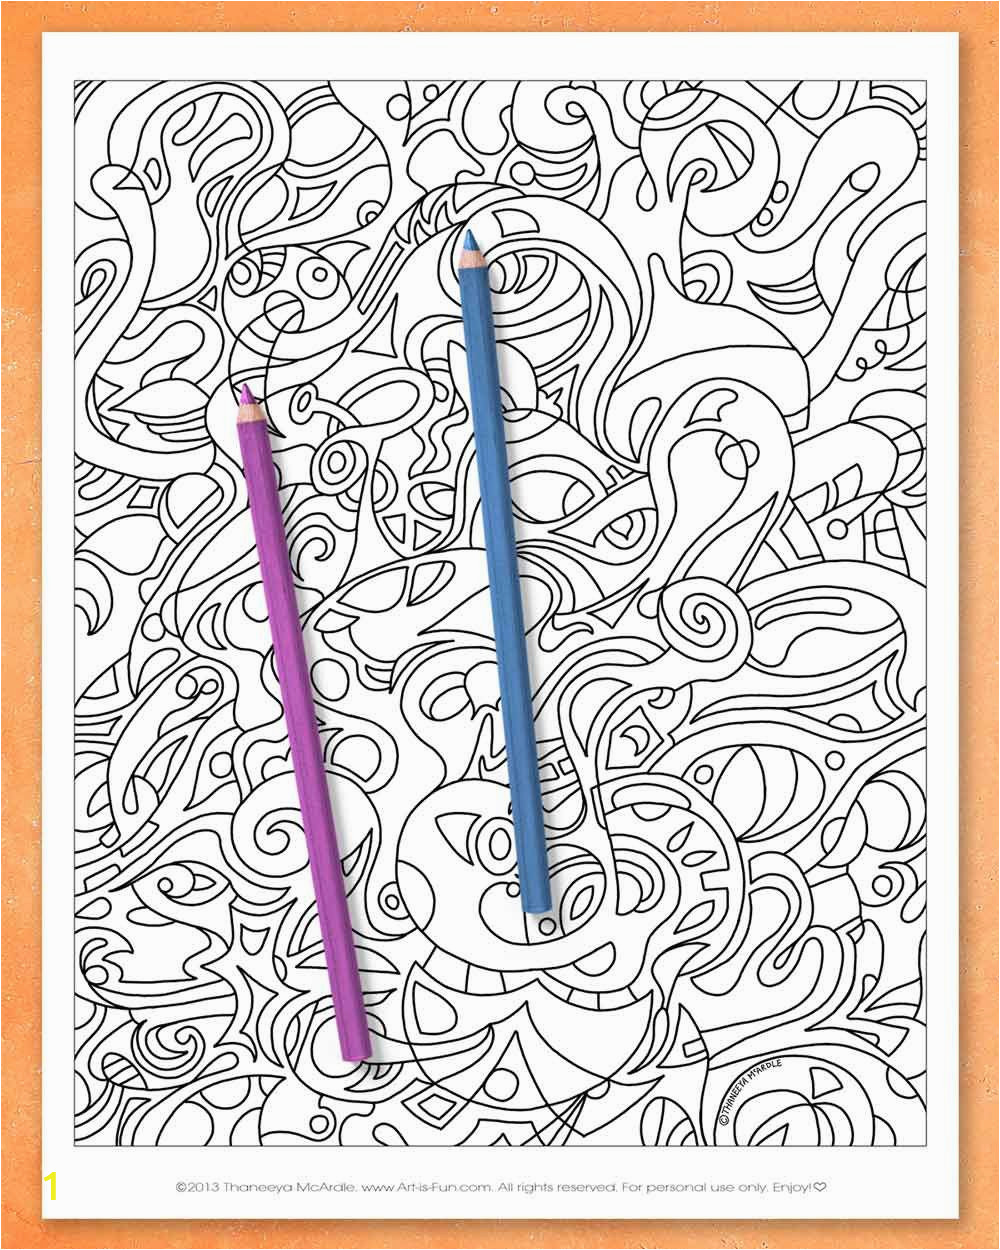 Www Art is Fun Com Abstract Coloring Pages HTML Abstract Coloring Pages Printable E Book Of Groovy